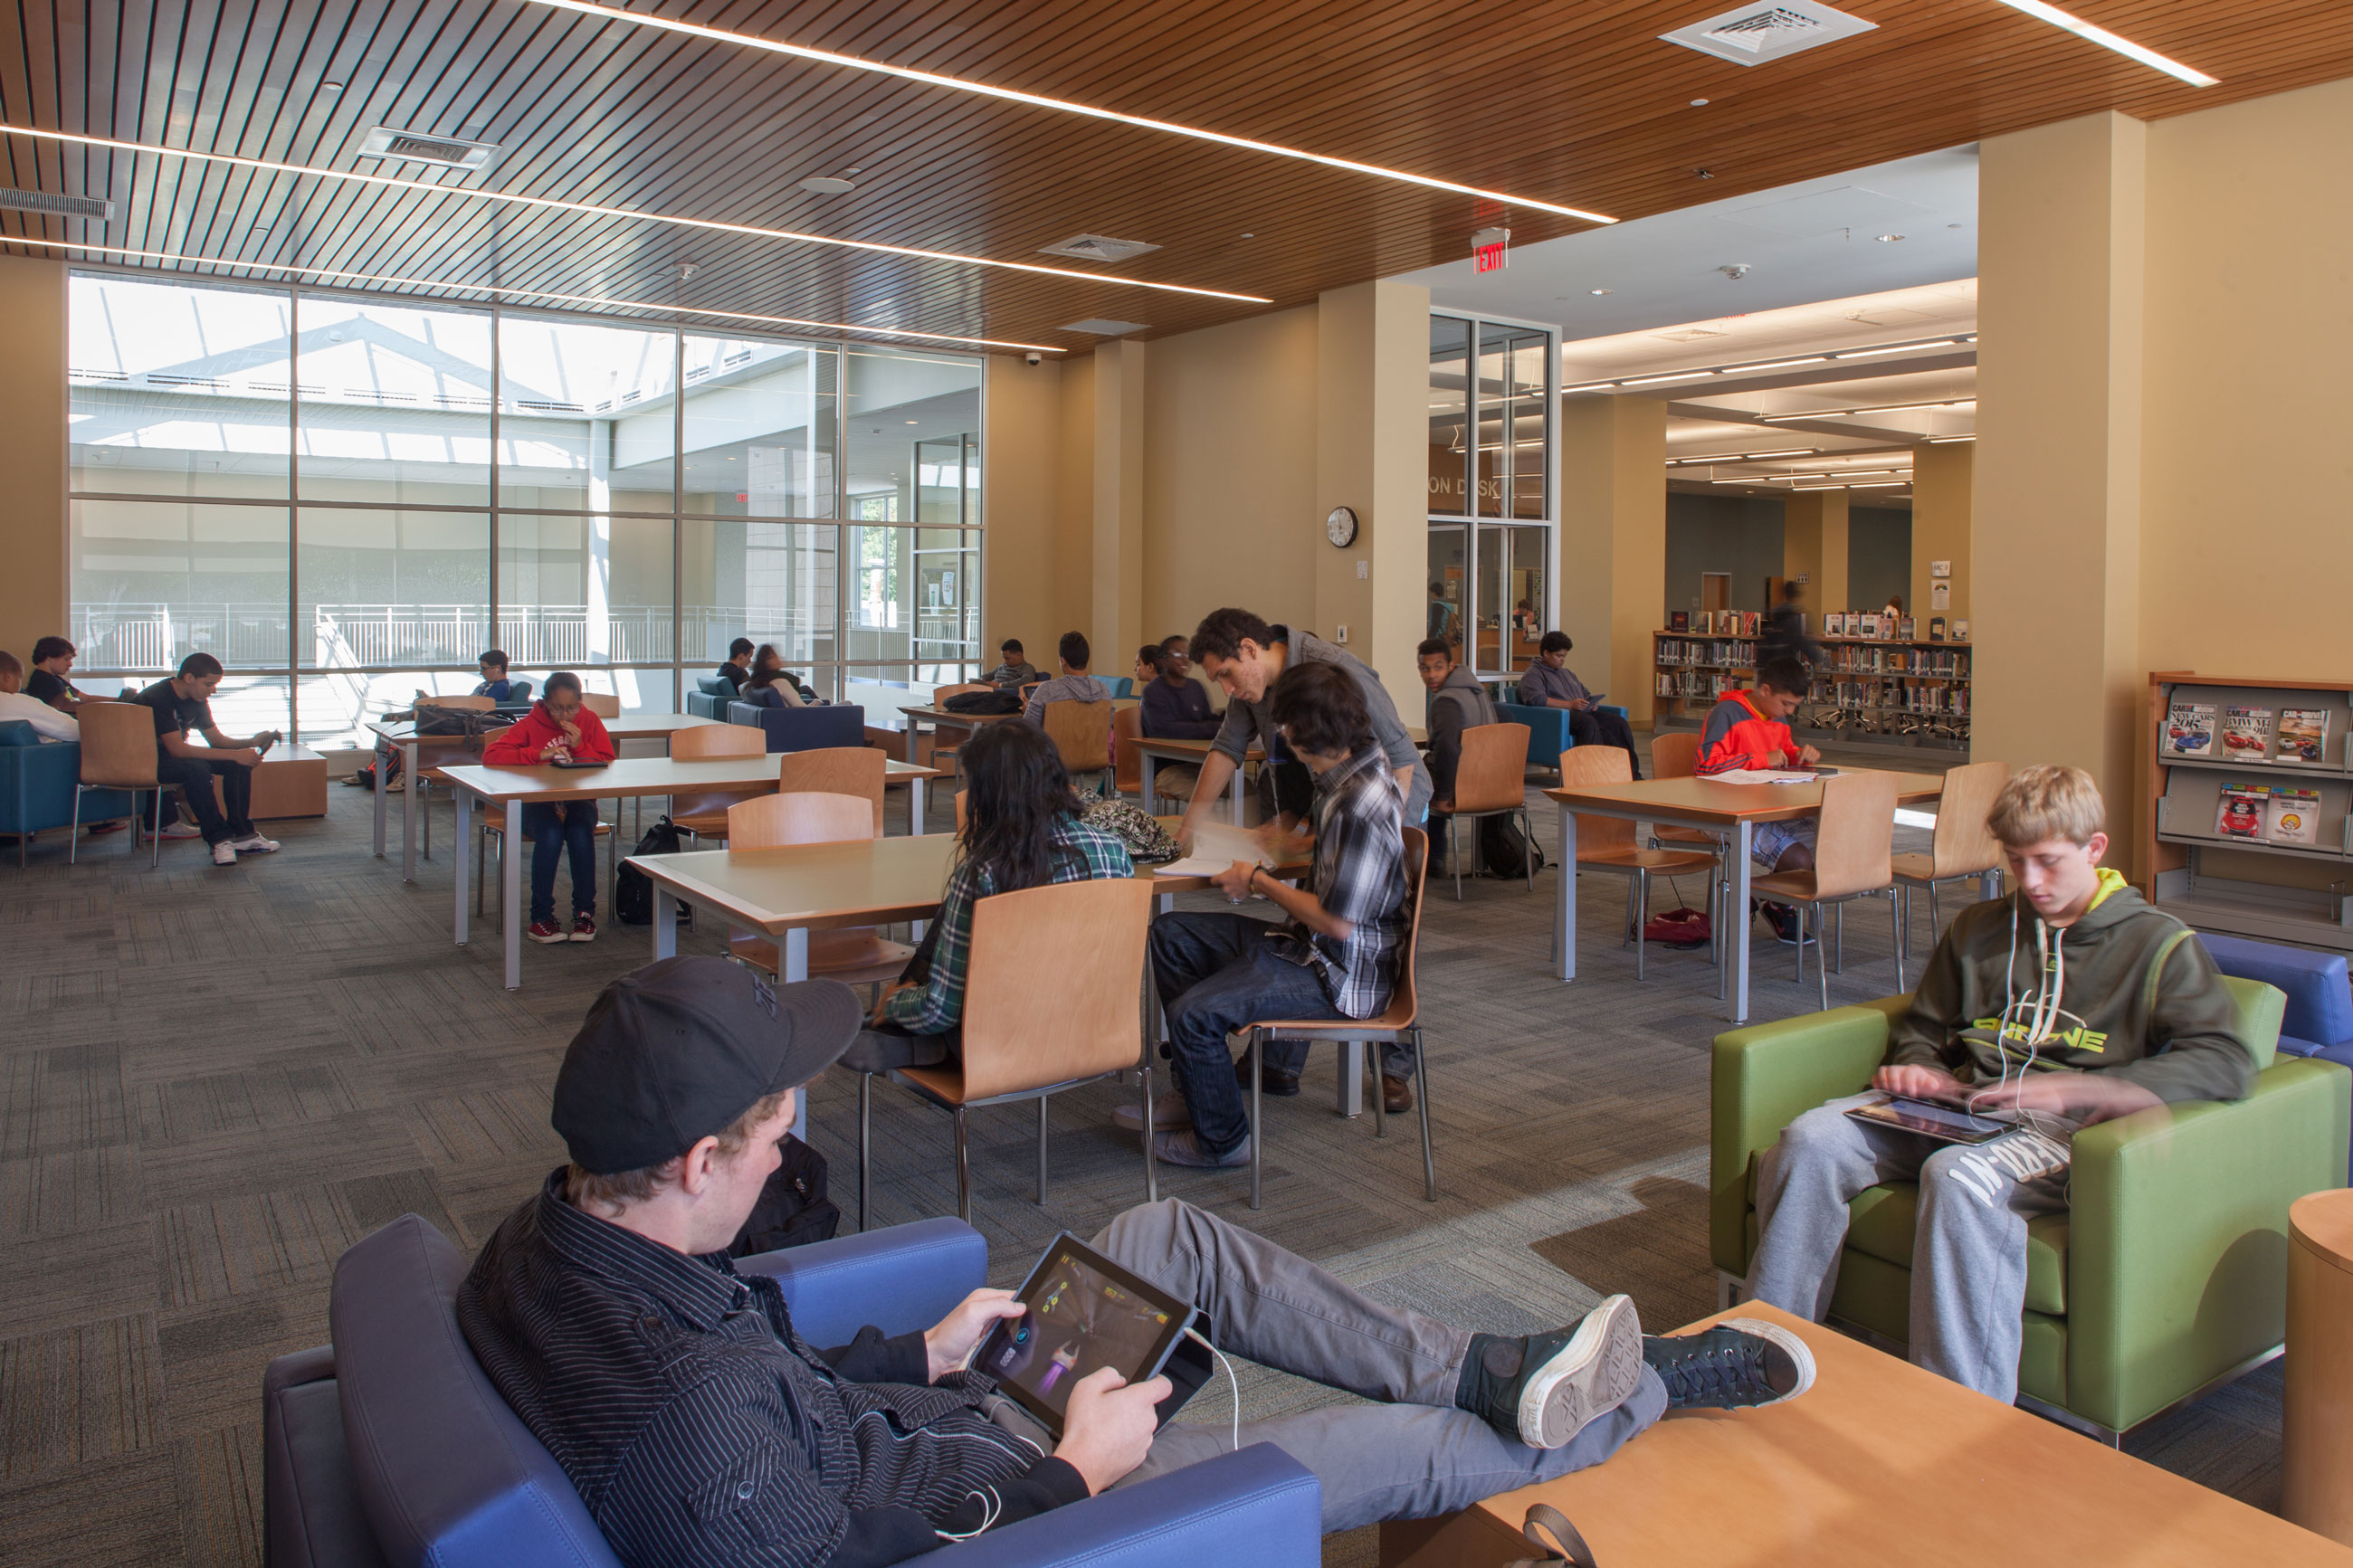 Students studying in the library, in various seating arrangements, with floor-to-ceiling windows in the background.